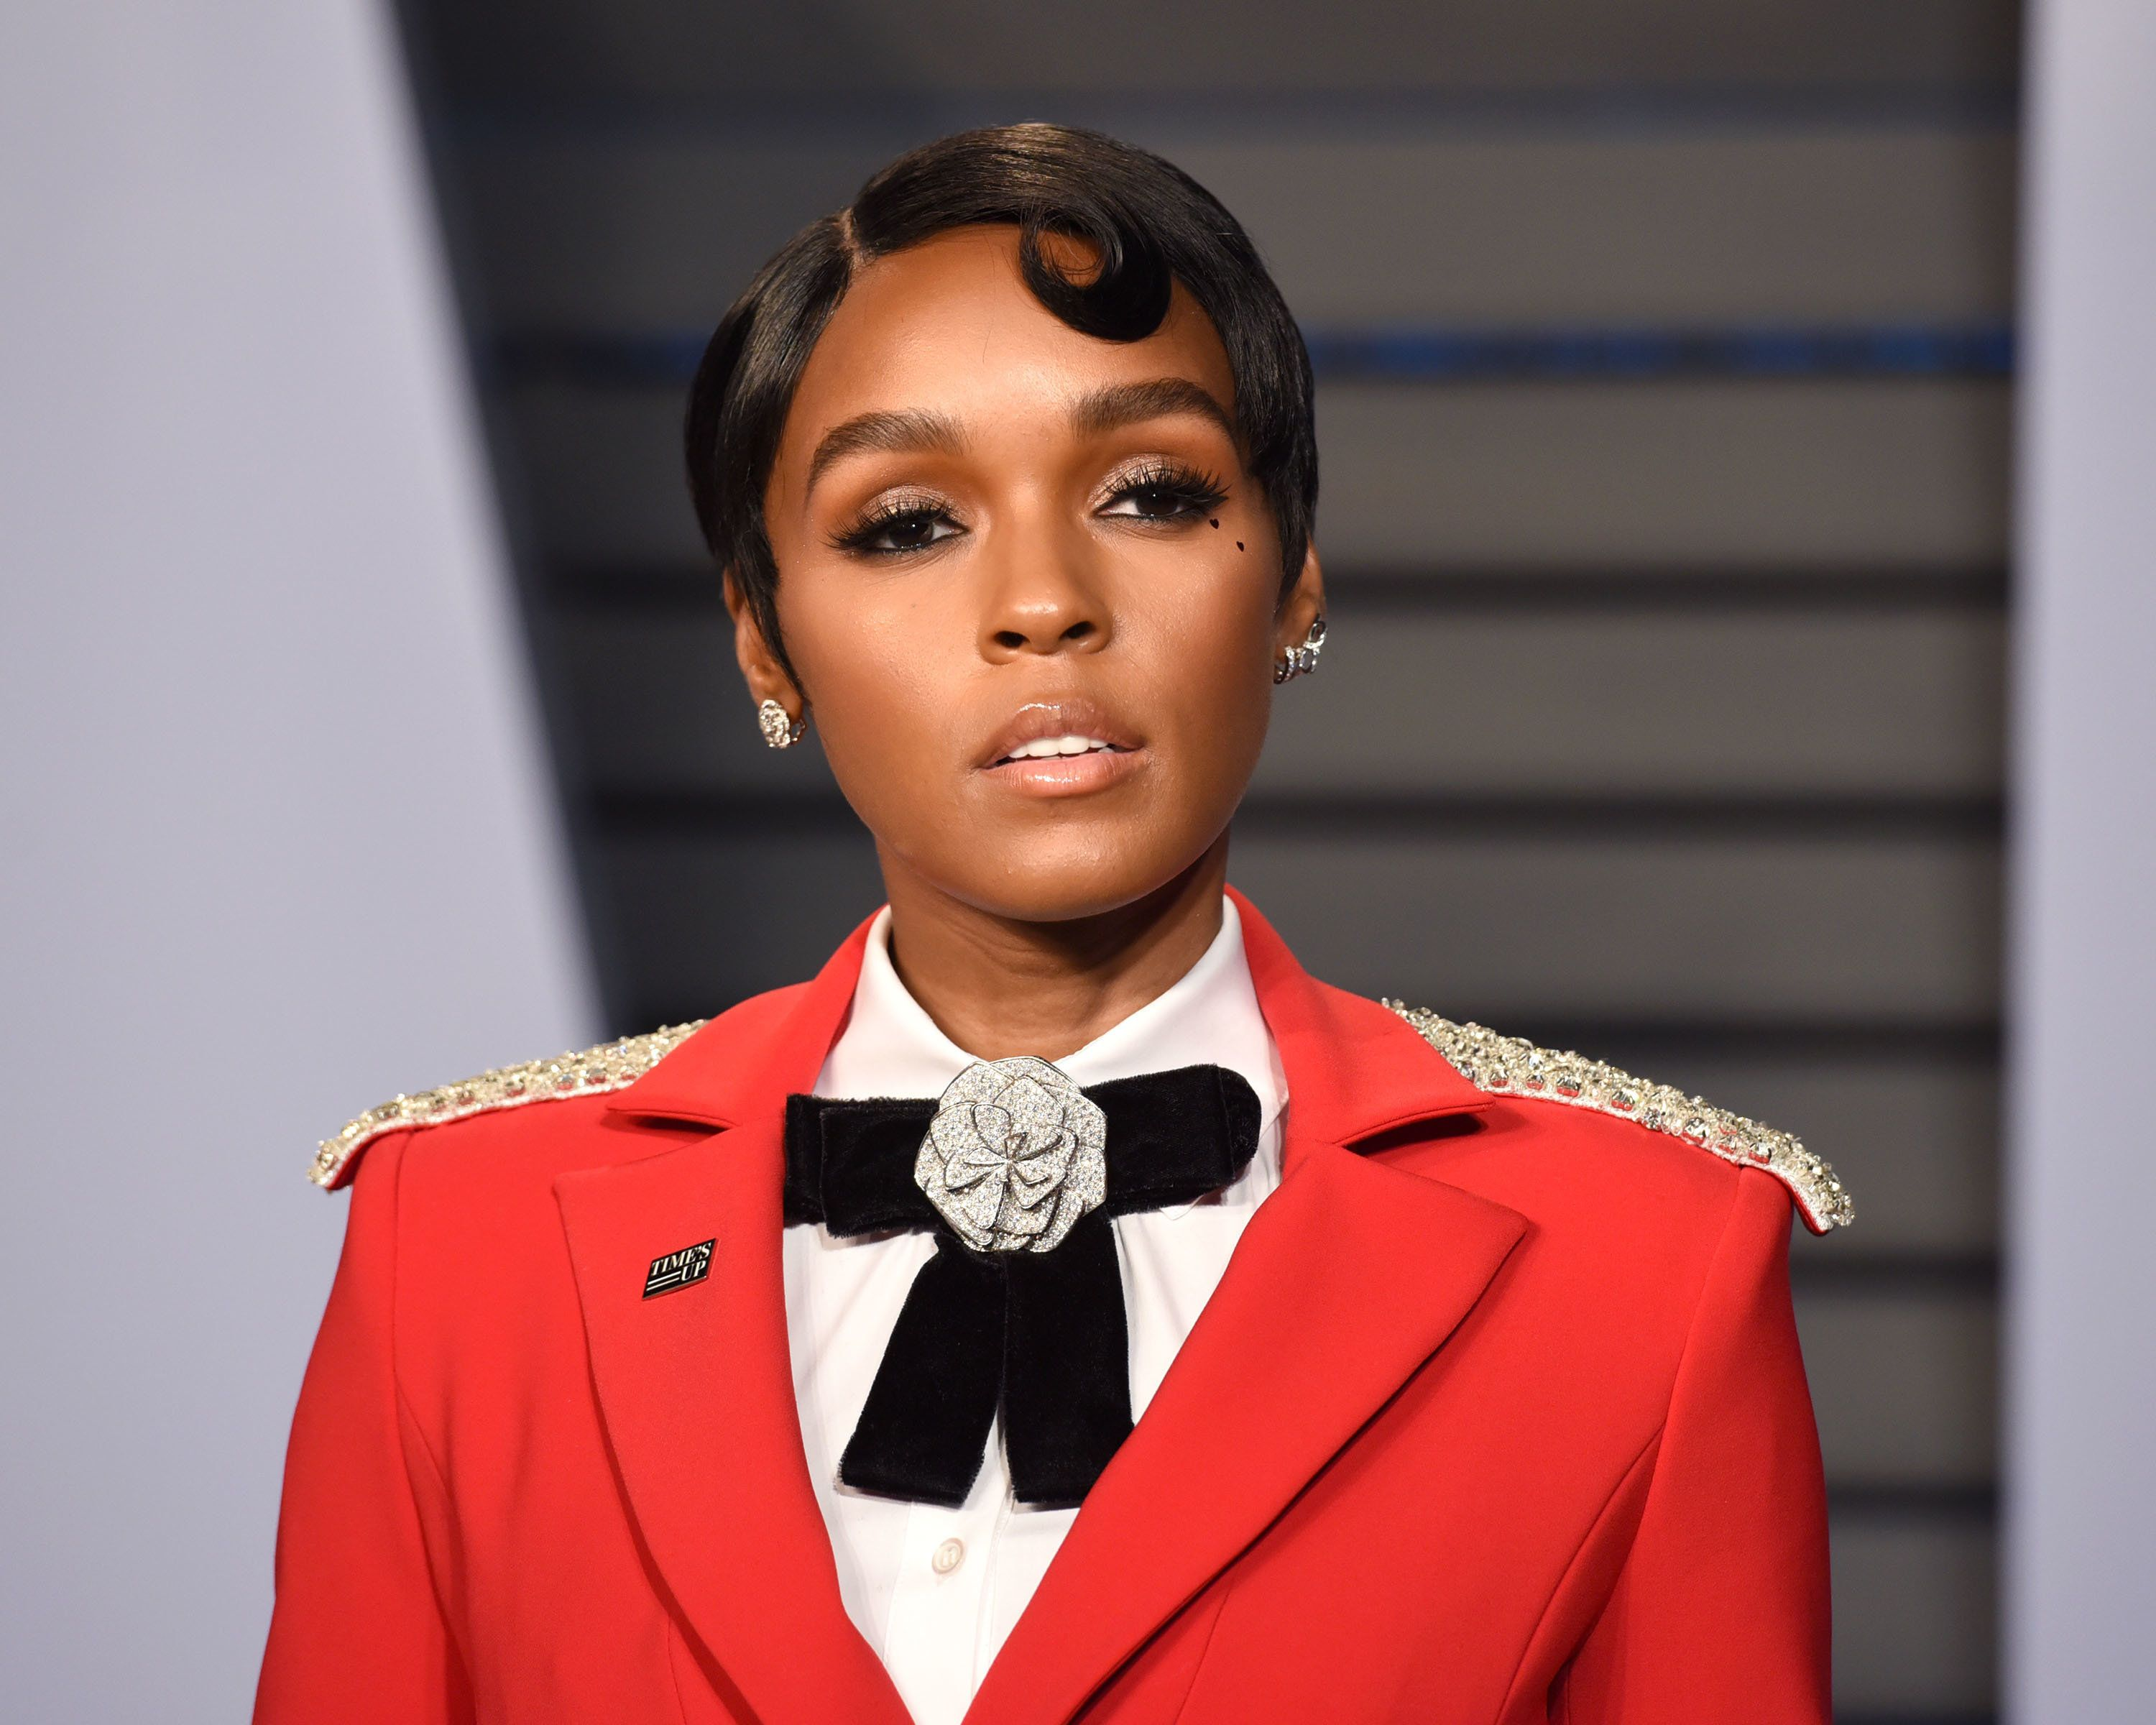 Janelle Monáe Reveals She Is Pansexual In Rolling Stone Interview